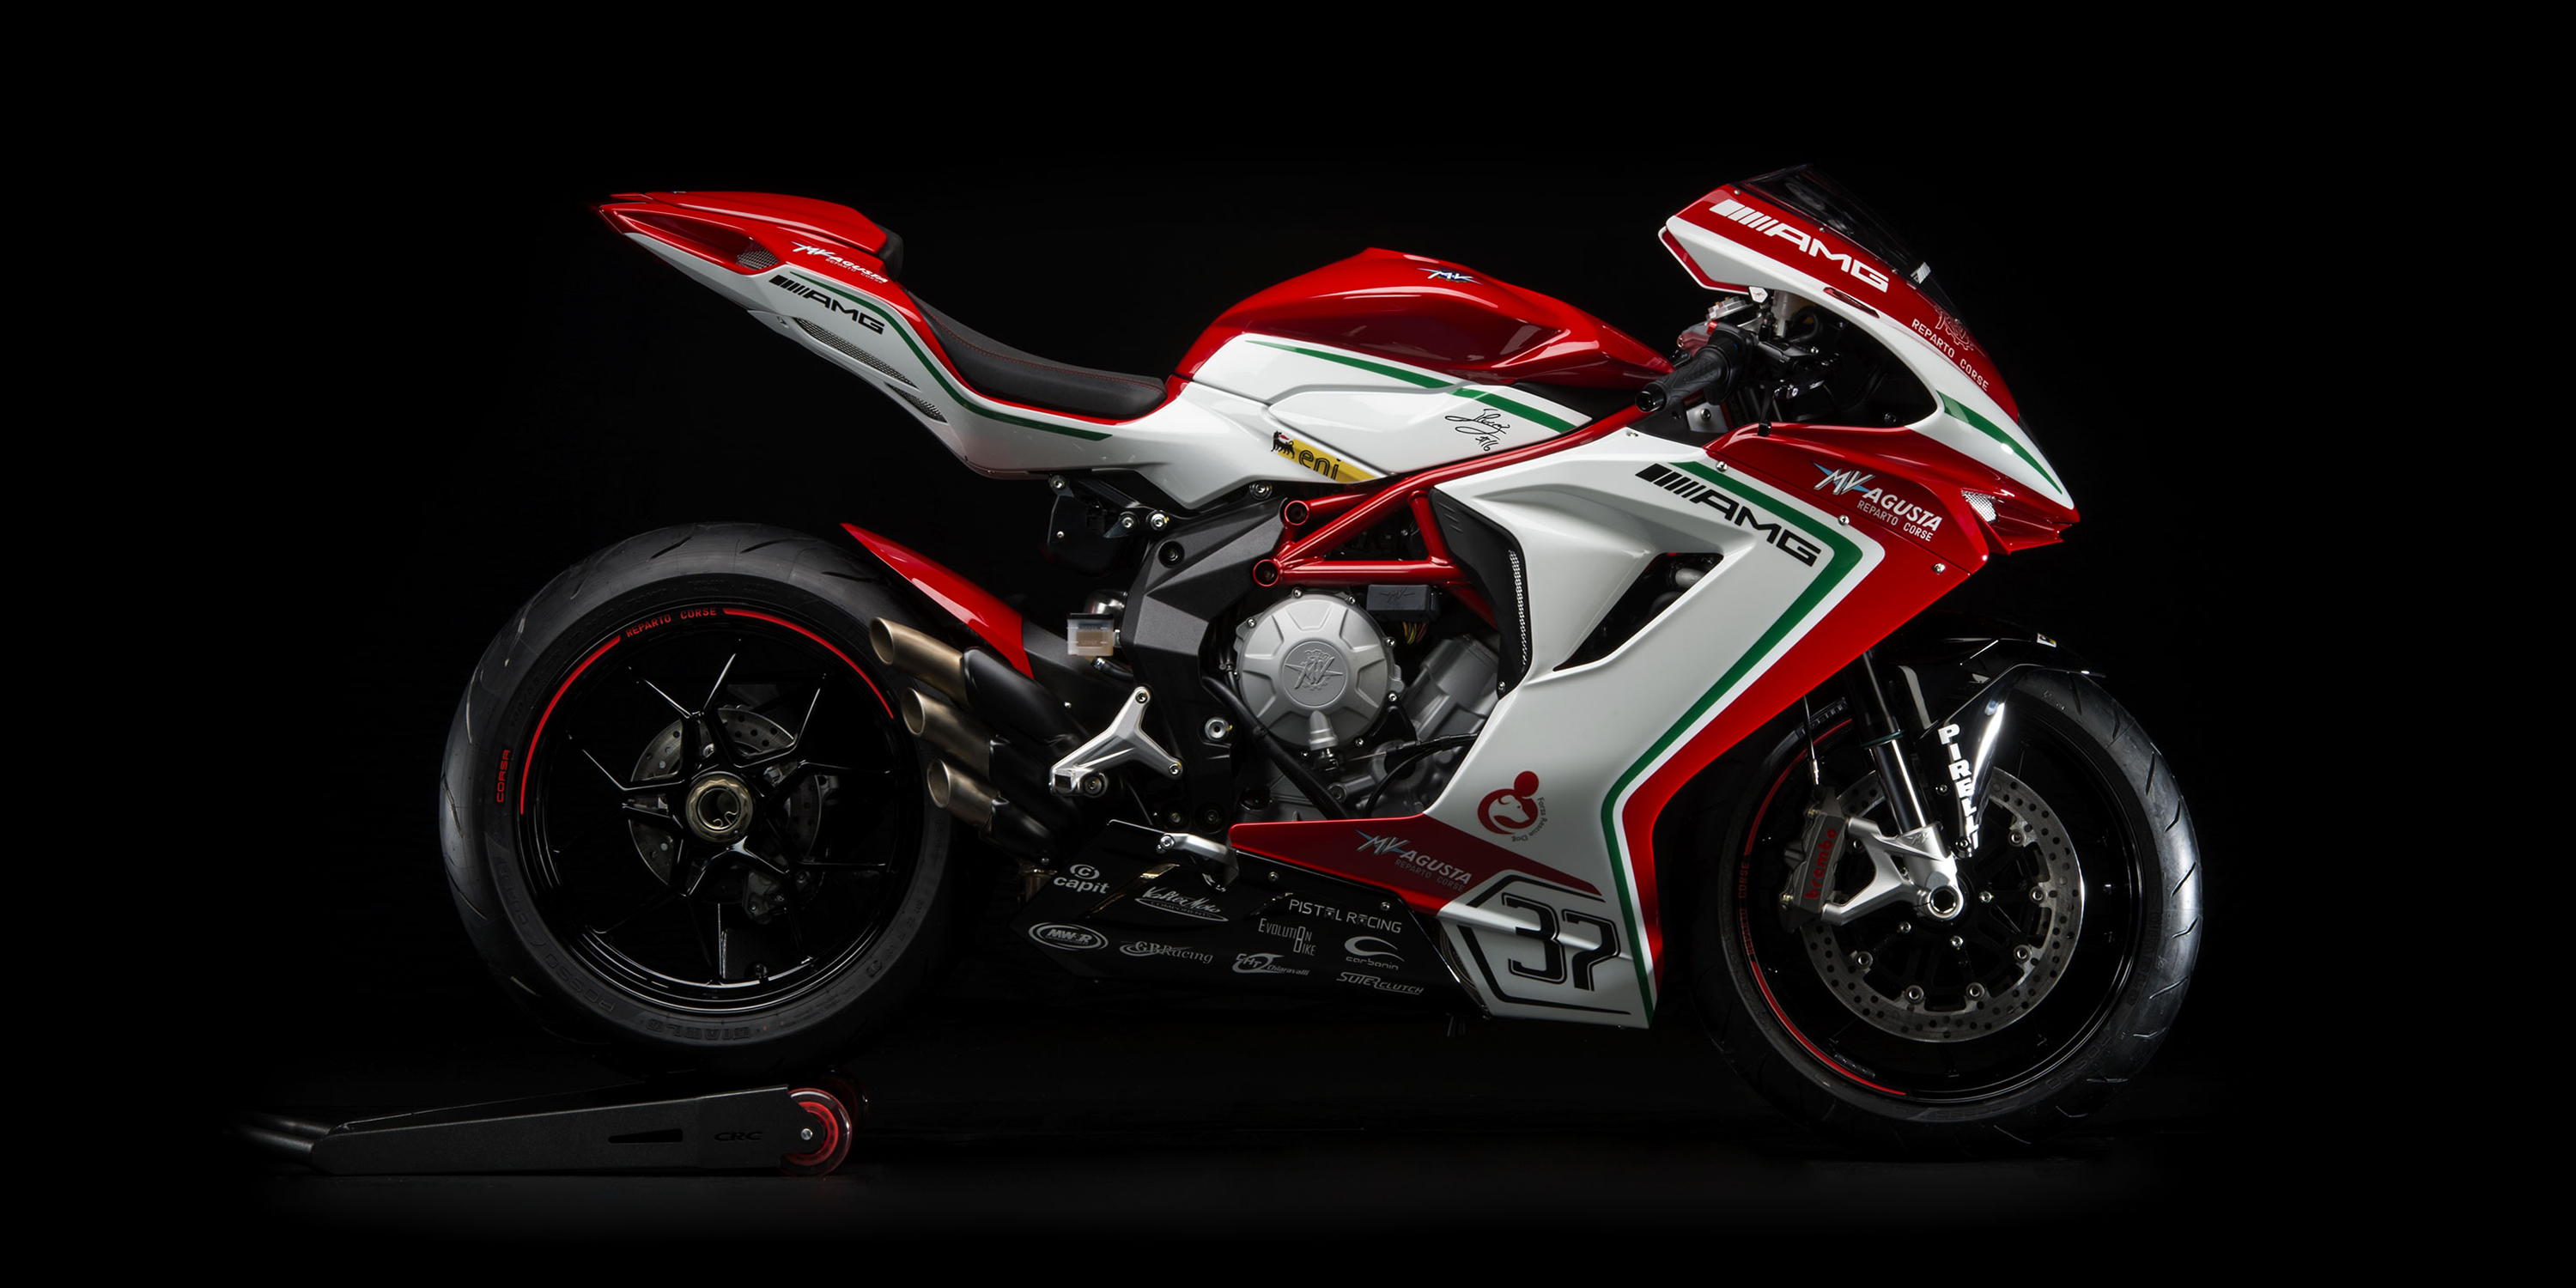 mv agusta f3 800 rc launched limited edition in india at lakh. Black Bedroom Furniture Sets. Home Design Ideas